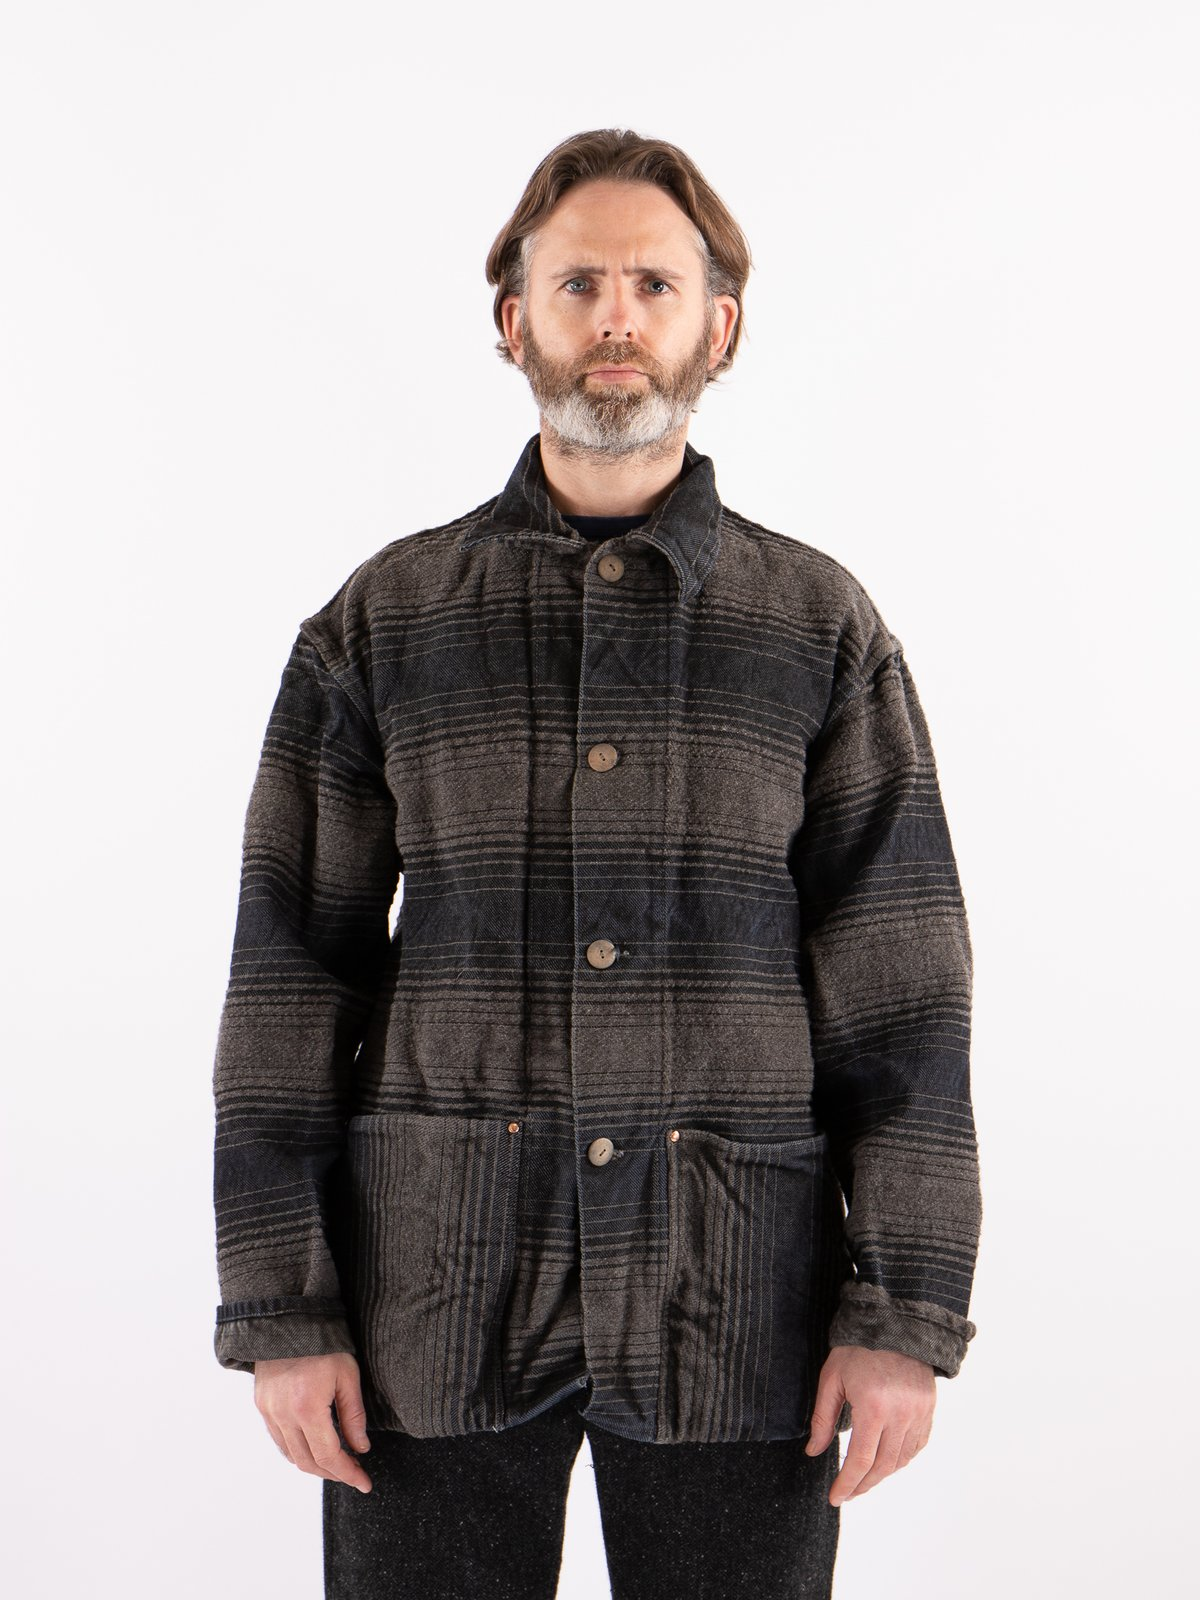 Indian Black Dye Doppler Stripe Collared Shepherd's Coat - Image 2